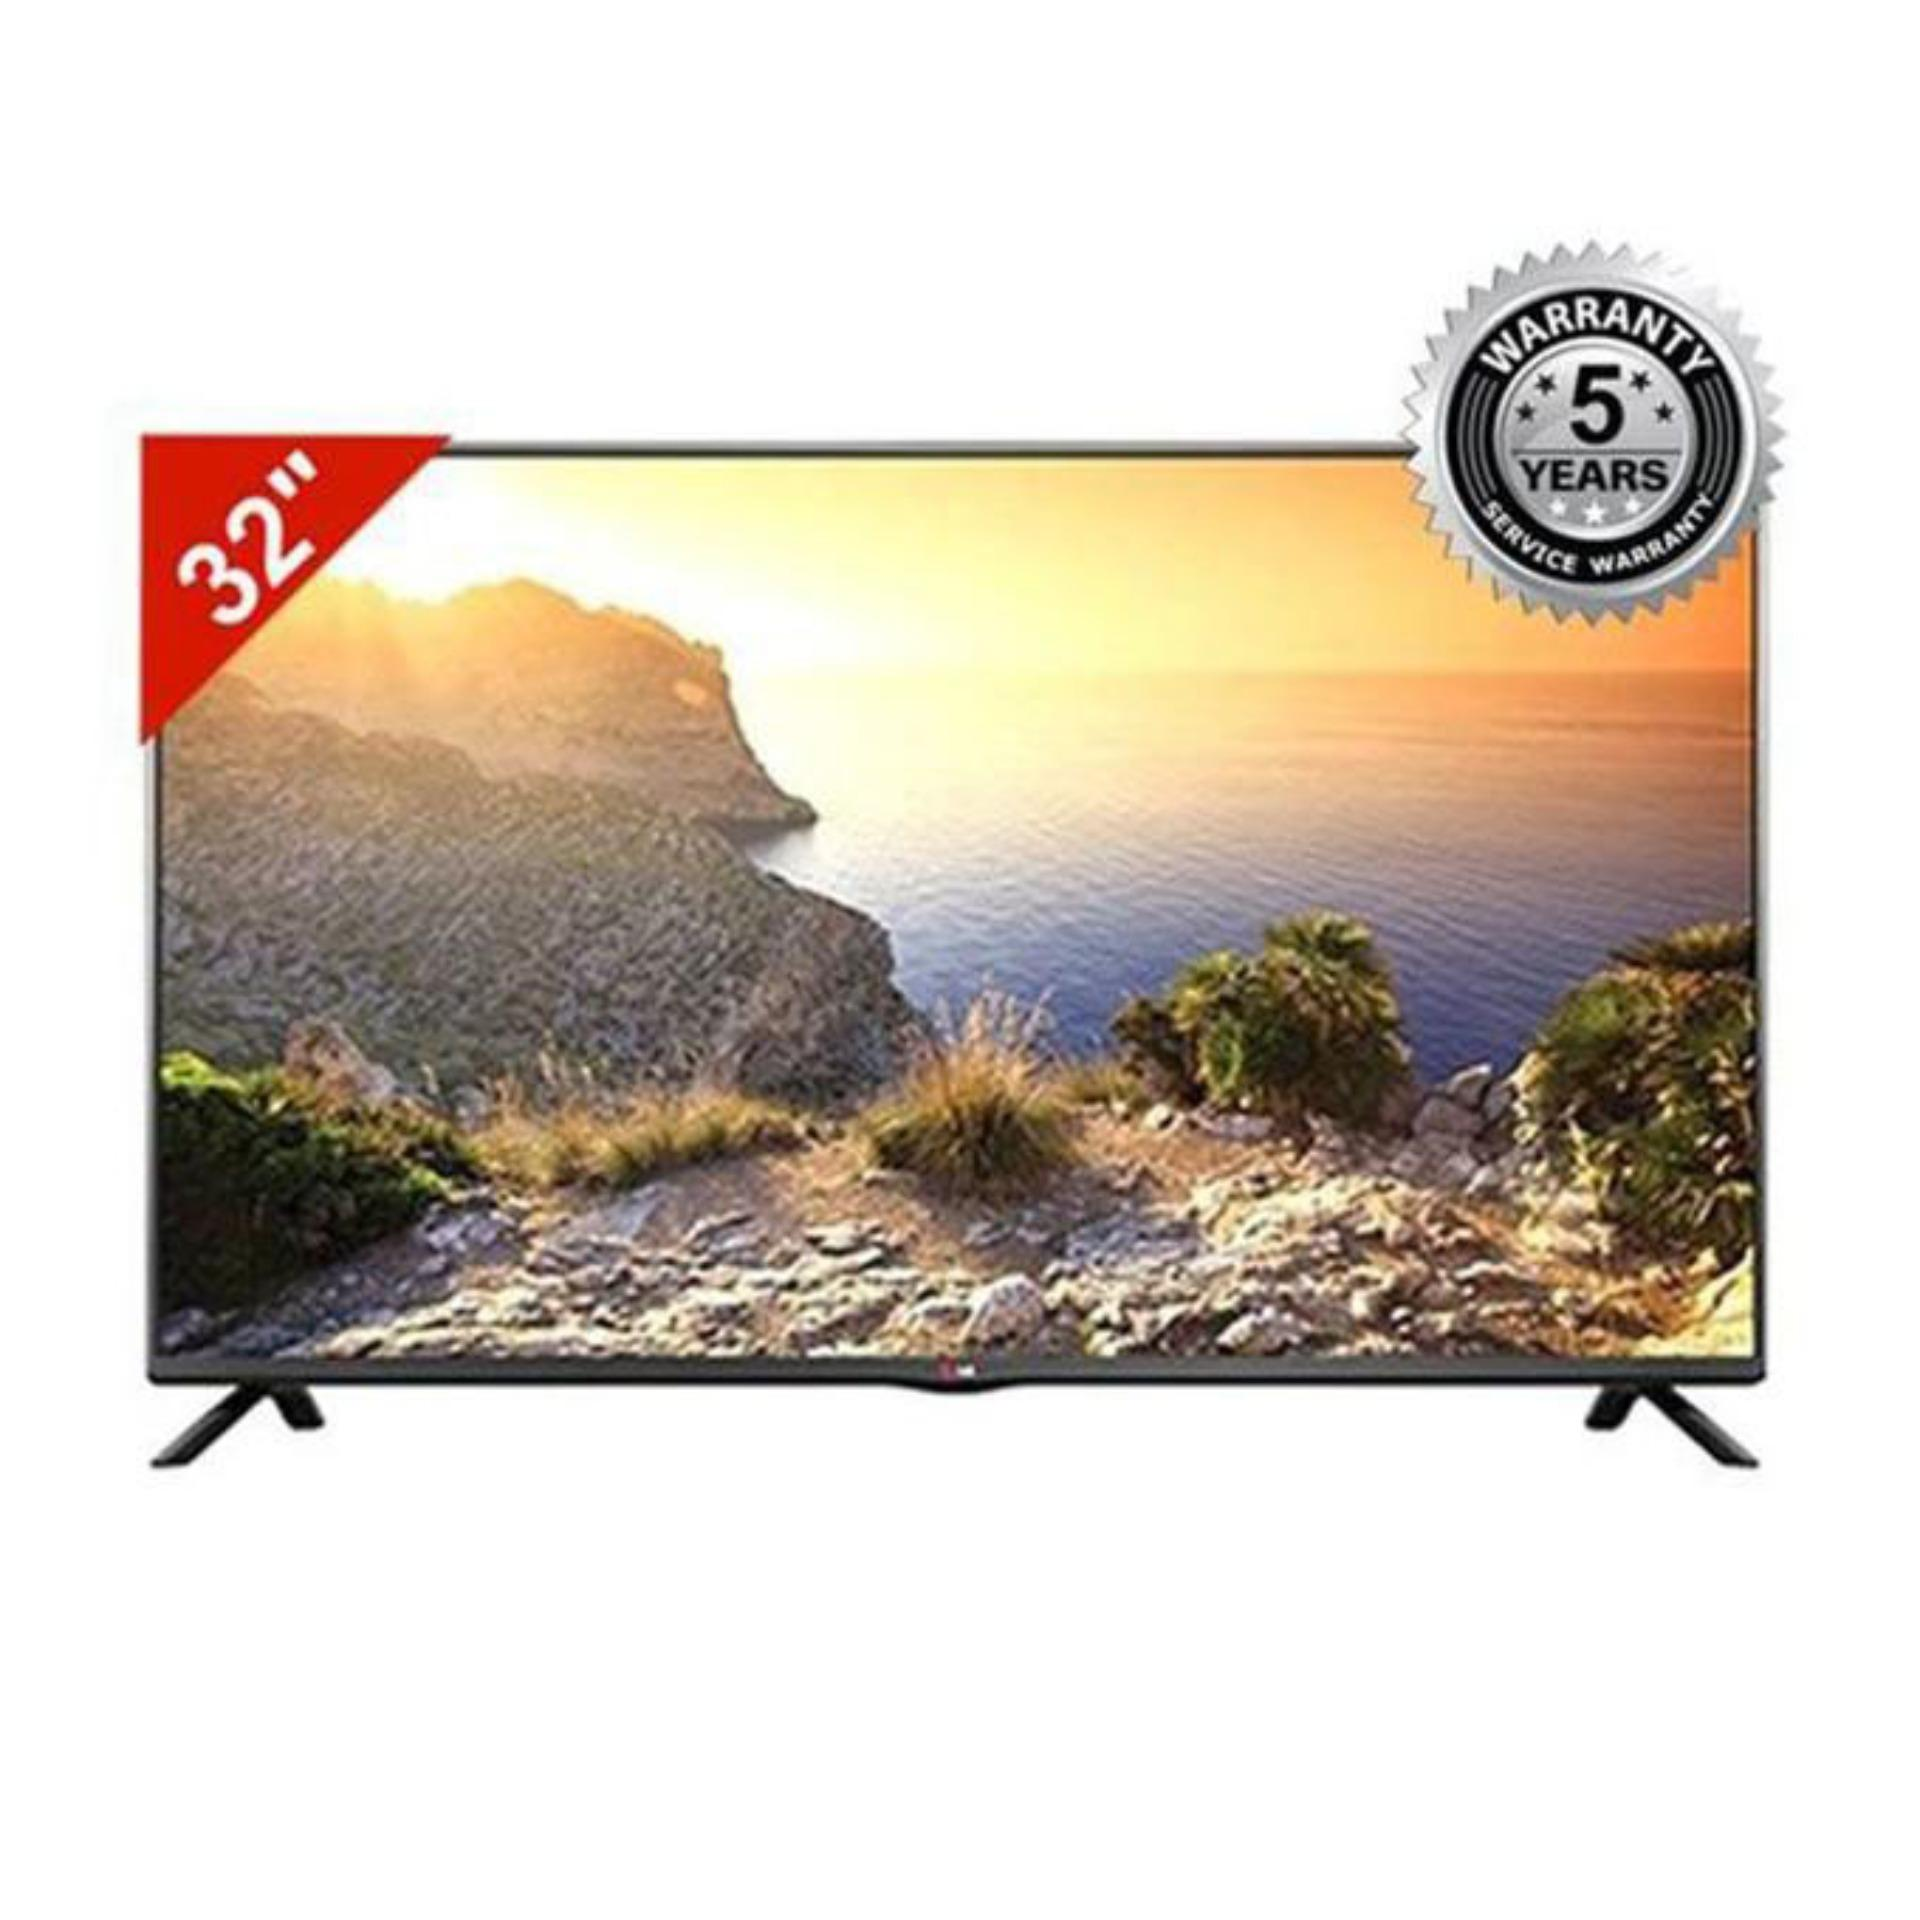 9e75e20b57906 Buy LG Televisions at Best Prices Online in Bangladesh - daraz.com.bd